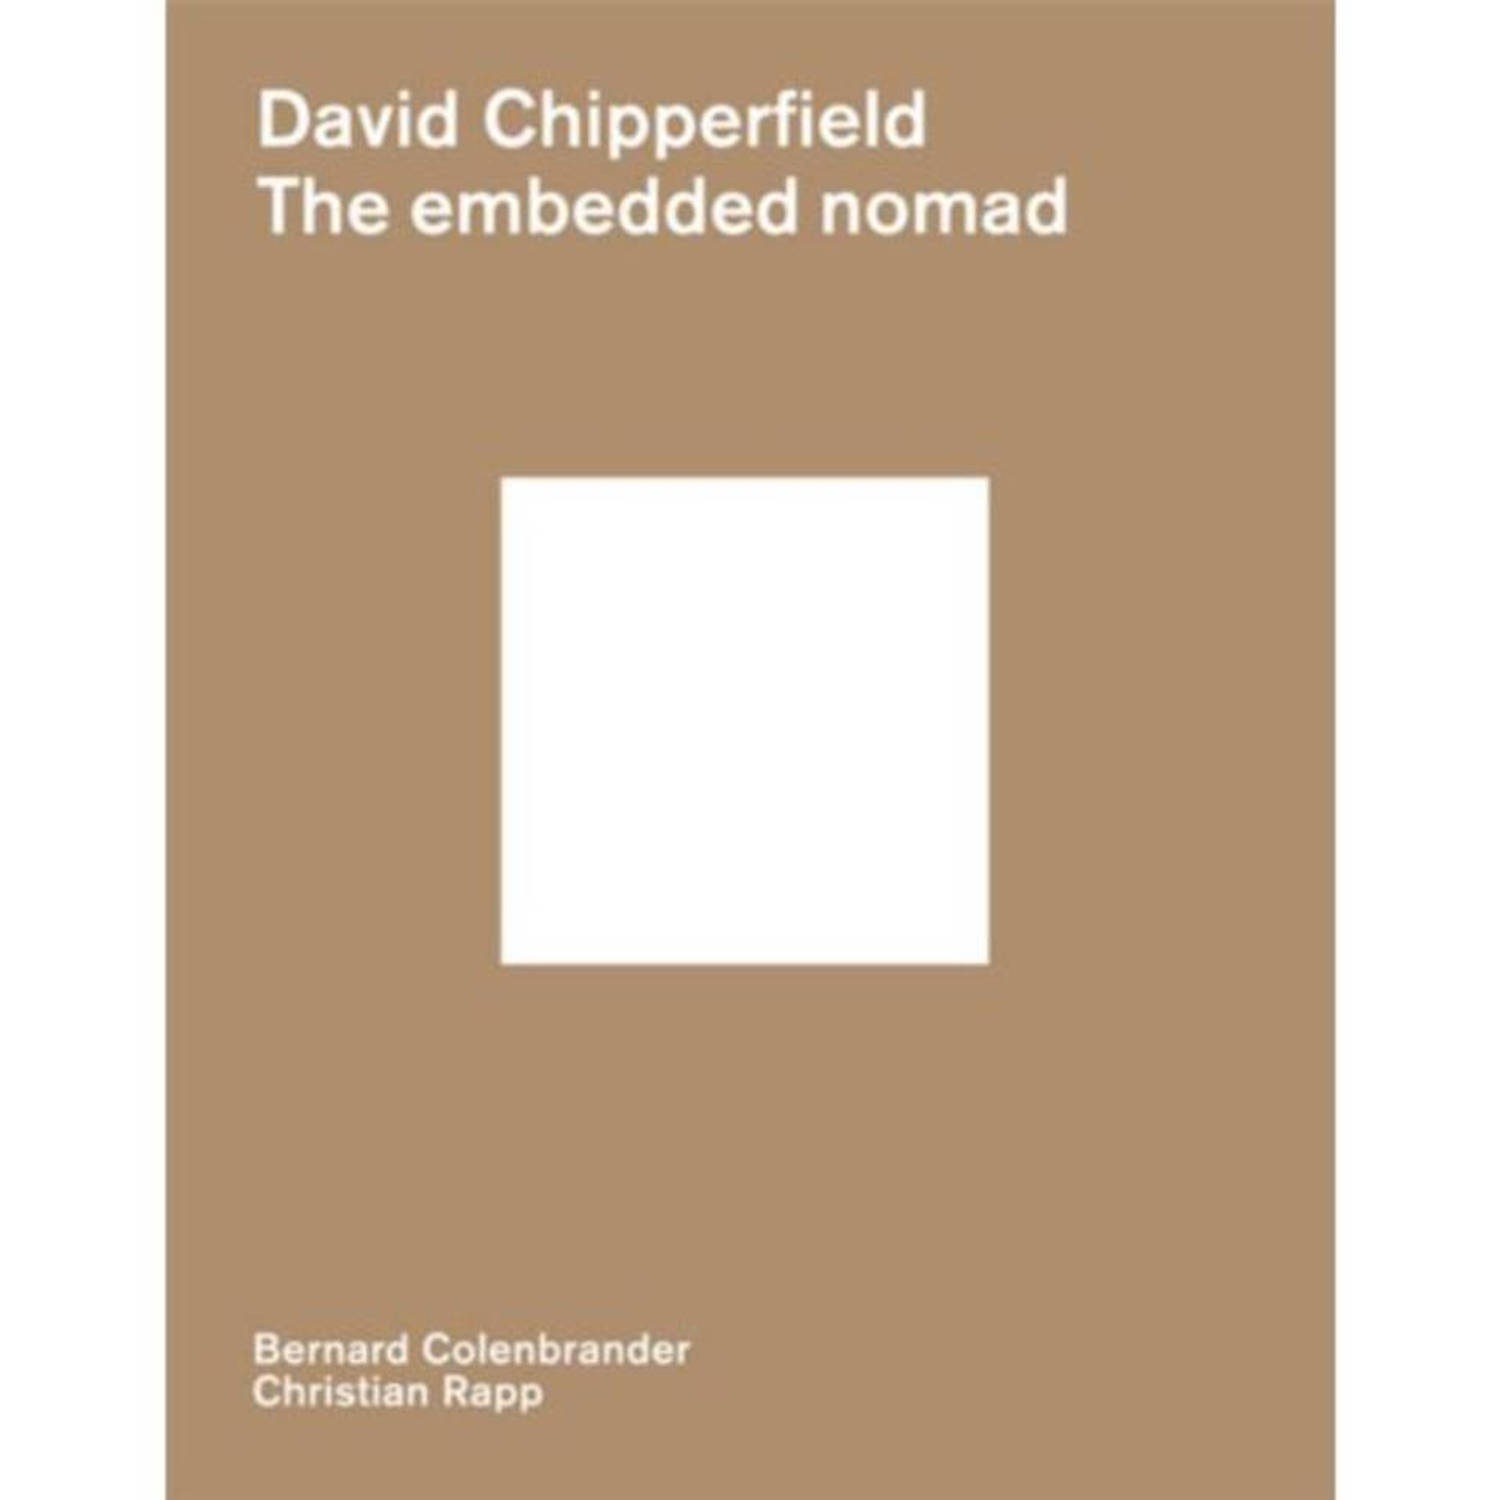 The embedded nomad